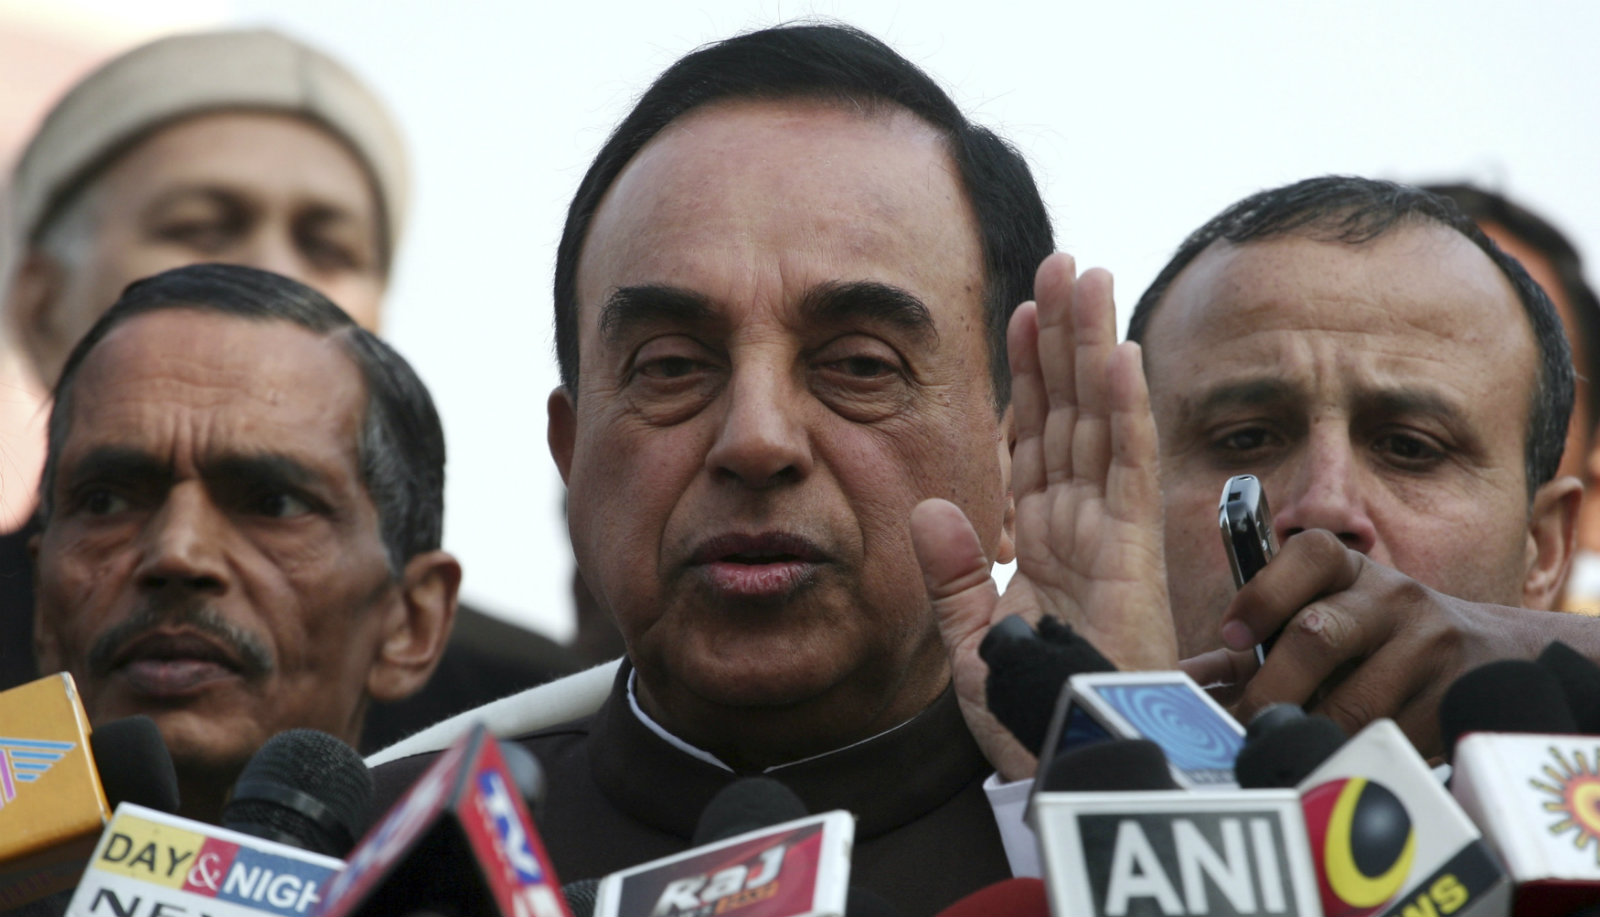 Subramanian Swamy, an opposition politician who brought the petition to revoke the telecom licences issued in 2008, speaks with the media after a verdict outside the Supreme Court in New Delhi February 2, 2012. India's Supreme Court on Thursday revoked all 122 telecoms licences issued under a scandal-tainted 2008 sale, a fresh embarrassment for the government and plunging the mobile network market of Asia's third-largest economy into uncertainty.